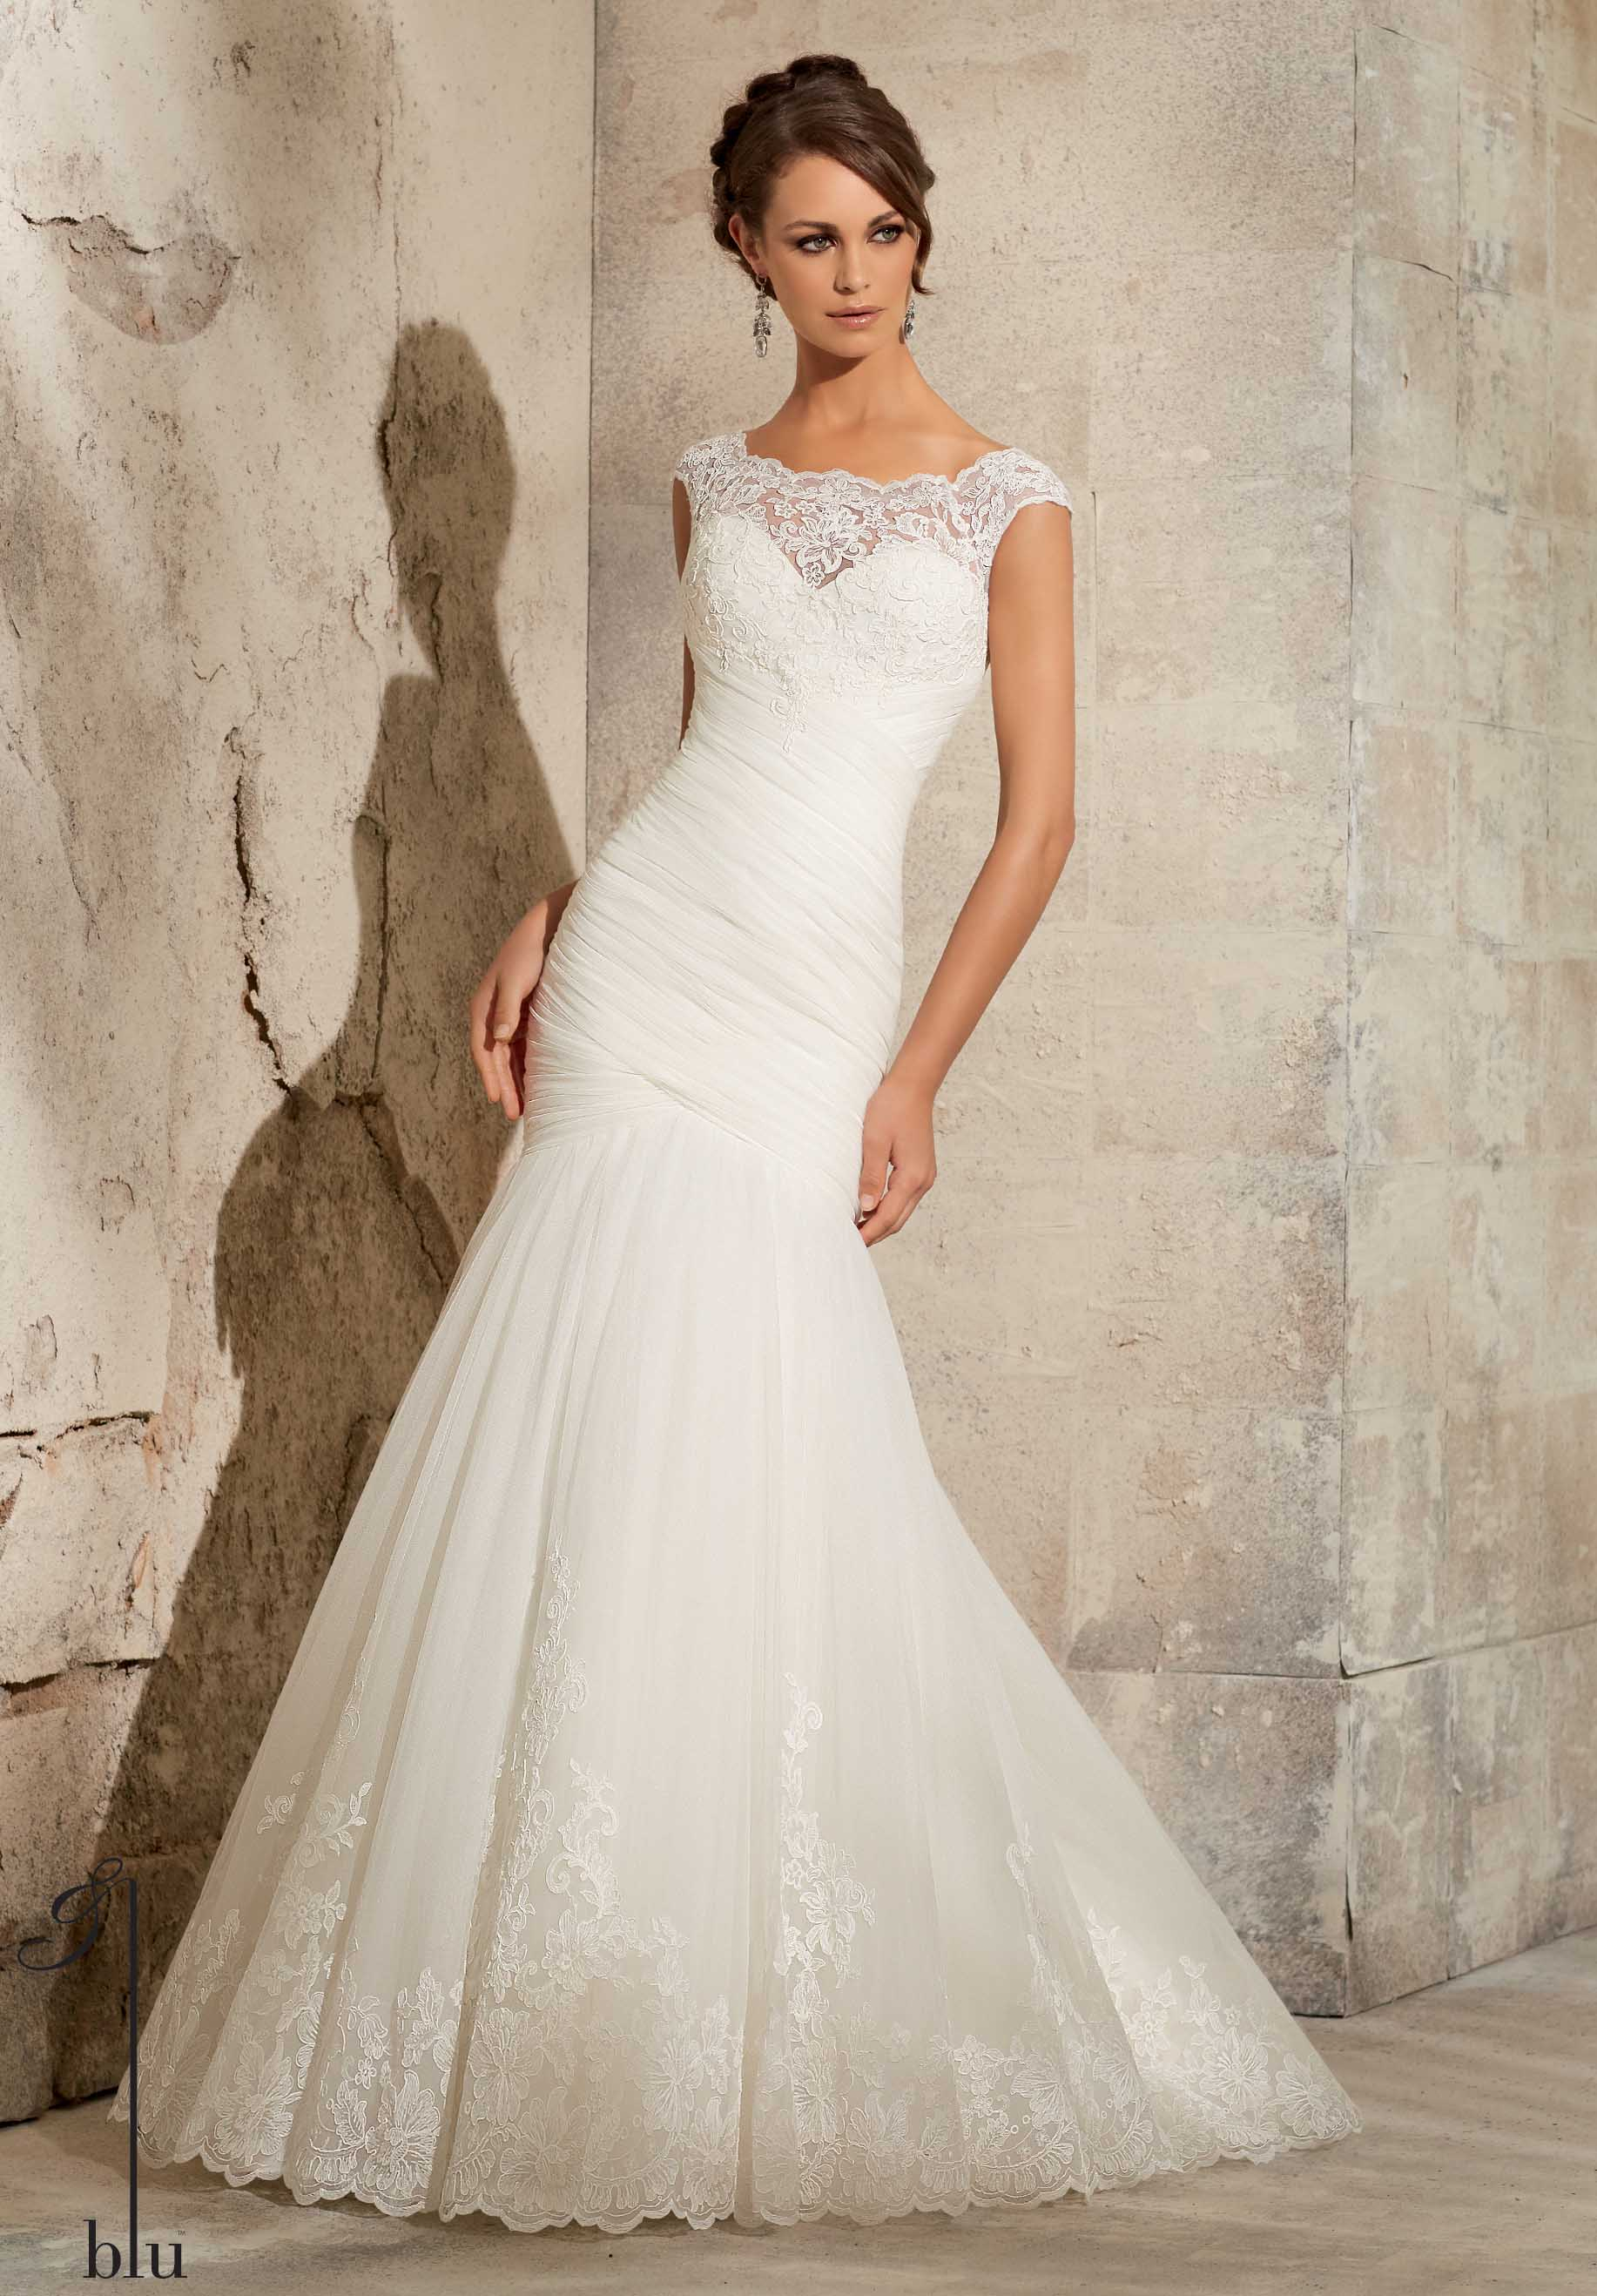 Mori Lee style #5305 beautiful lace bridal gown.